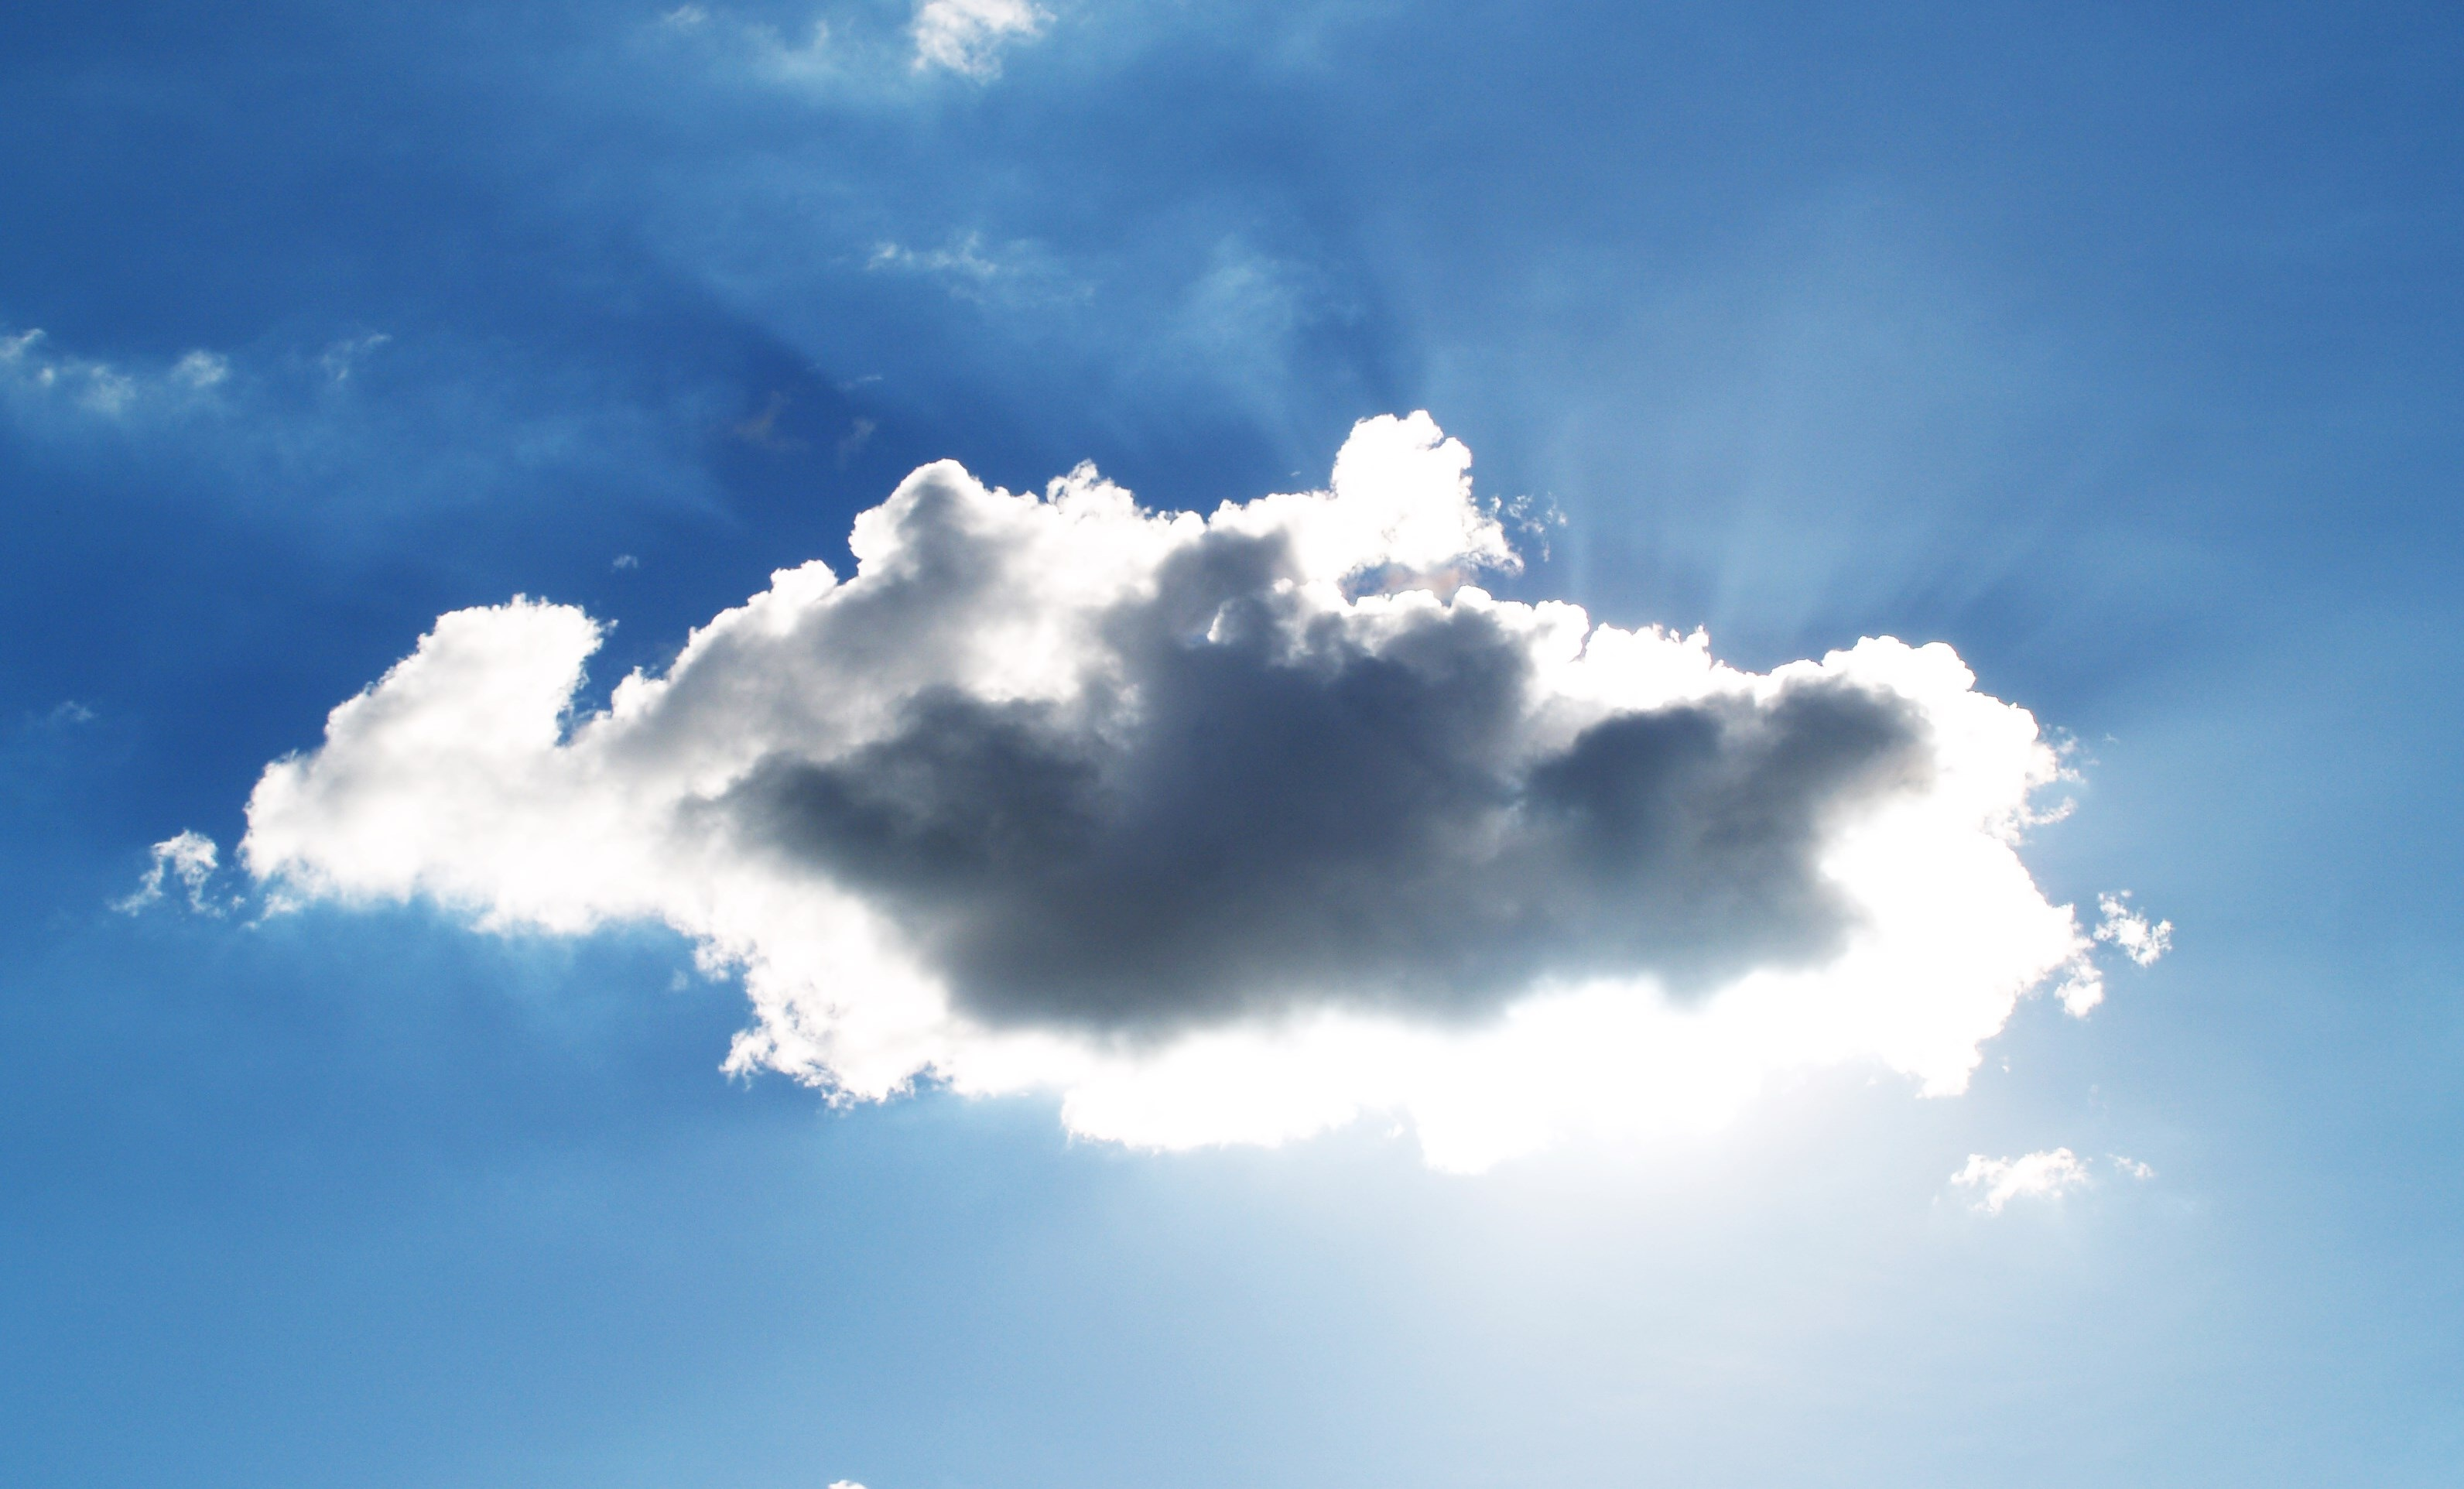 Fall Verse Wallpaper Free Stock Photo Of Blue Clouds Cloudy